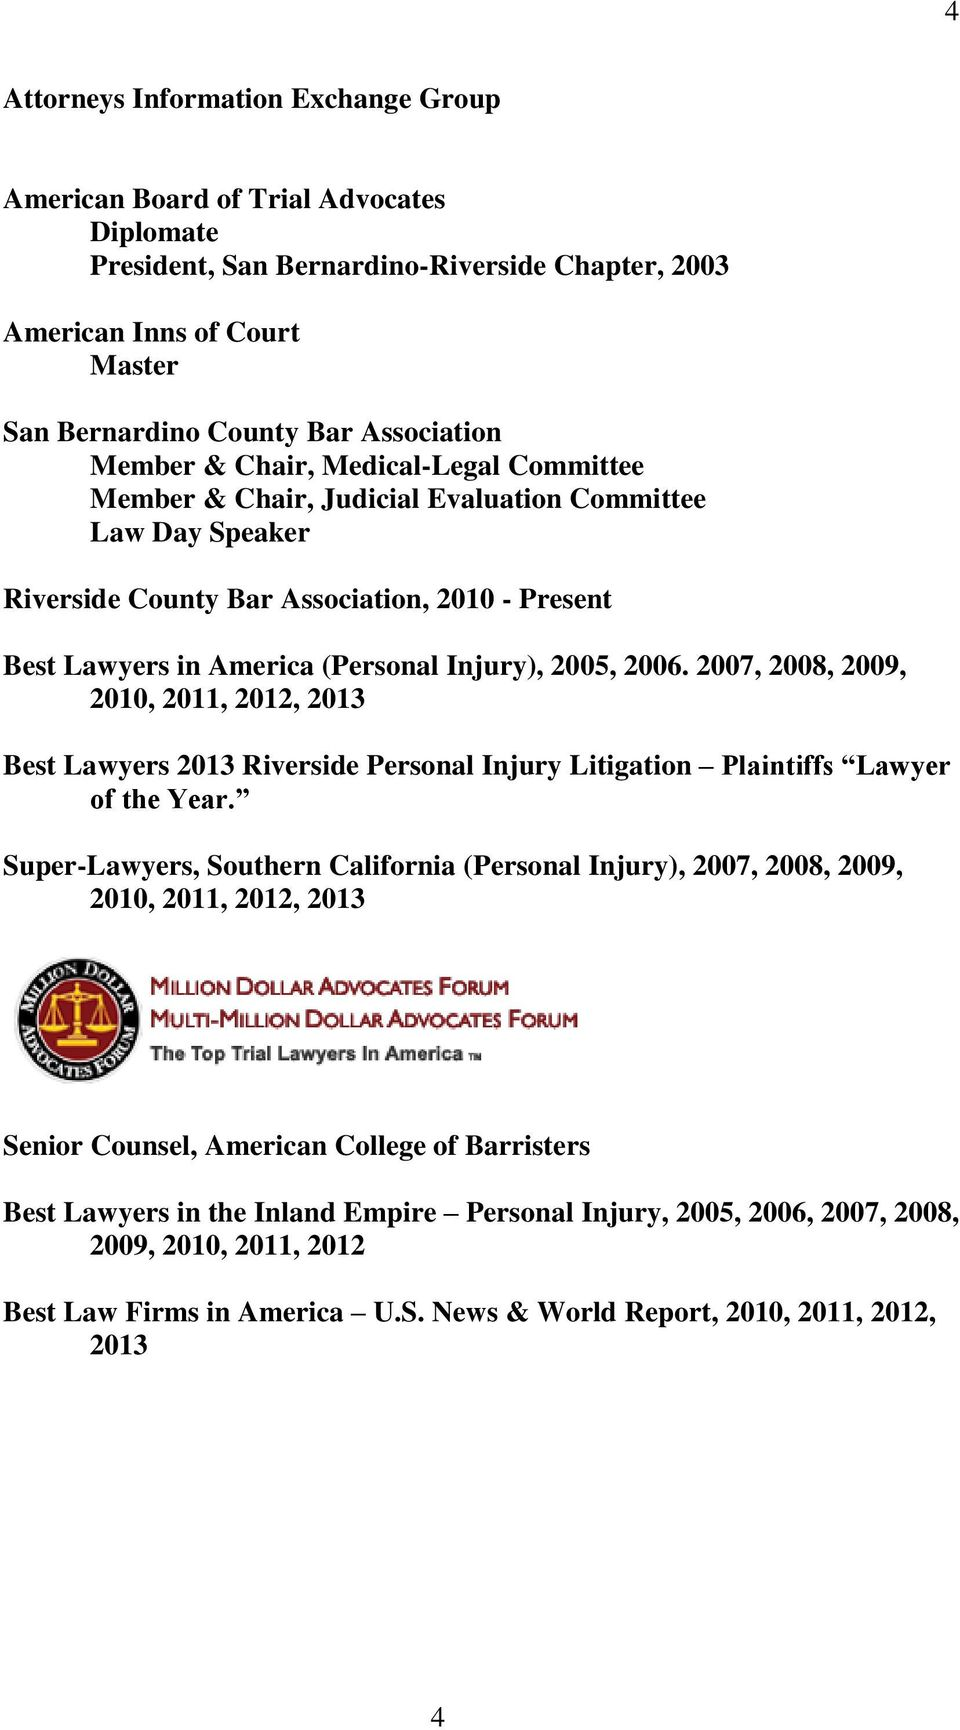 Injury), 2005, 2006. 2007, 2008, 2009, 2010, 2011, 2012, 2013 Best Lawyers 2013 Riverside Personal Injury Litigation Plaintiffs Lawyer of the Year.